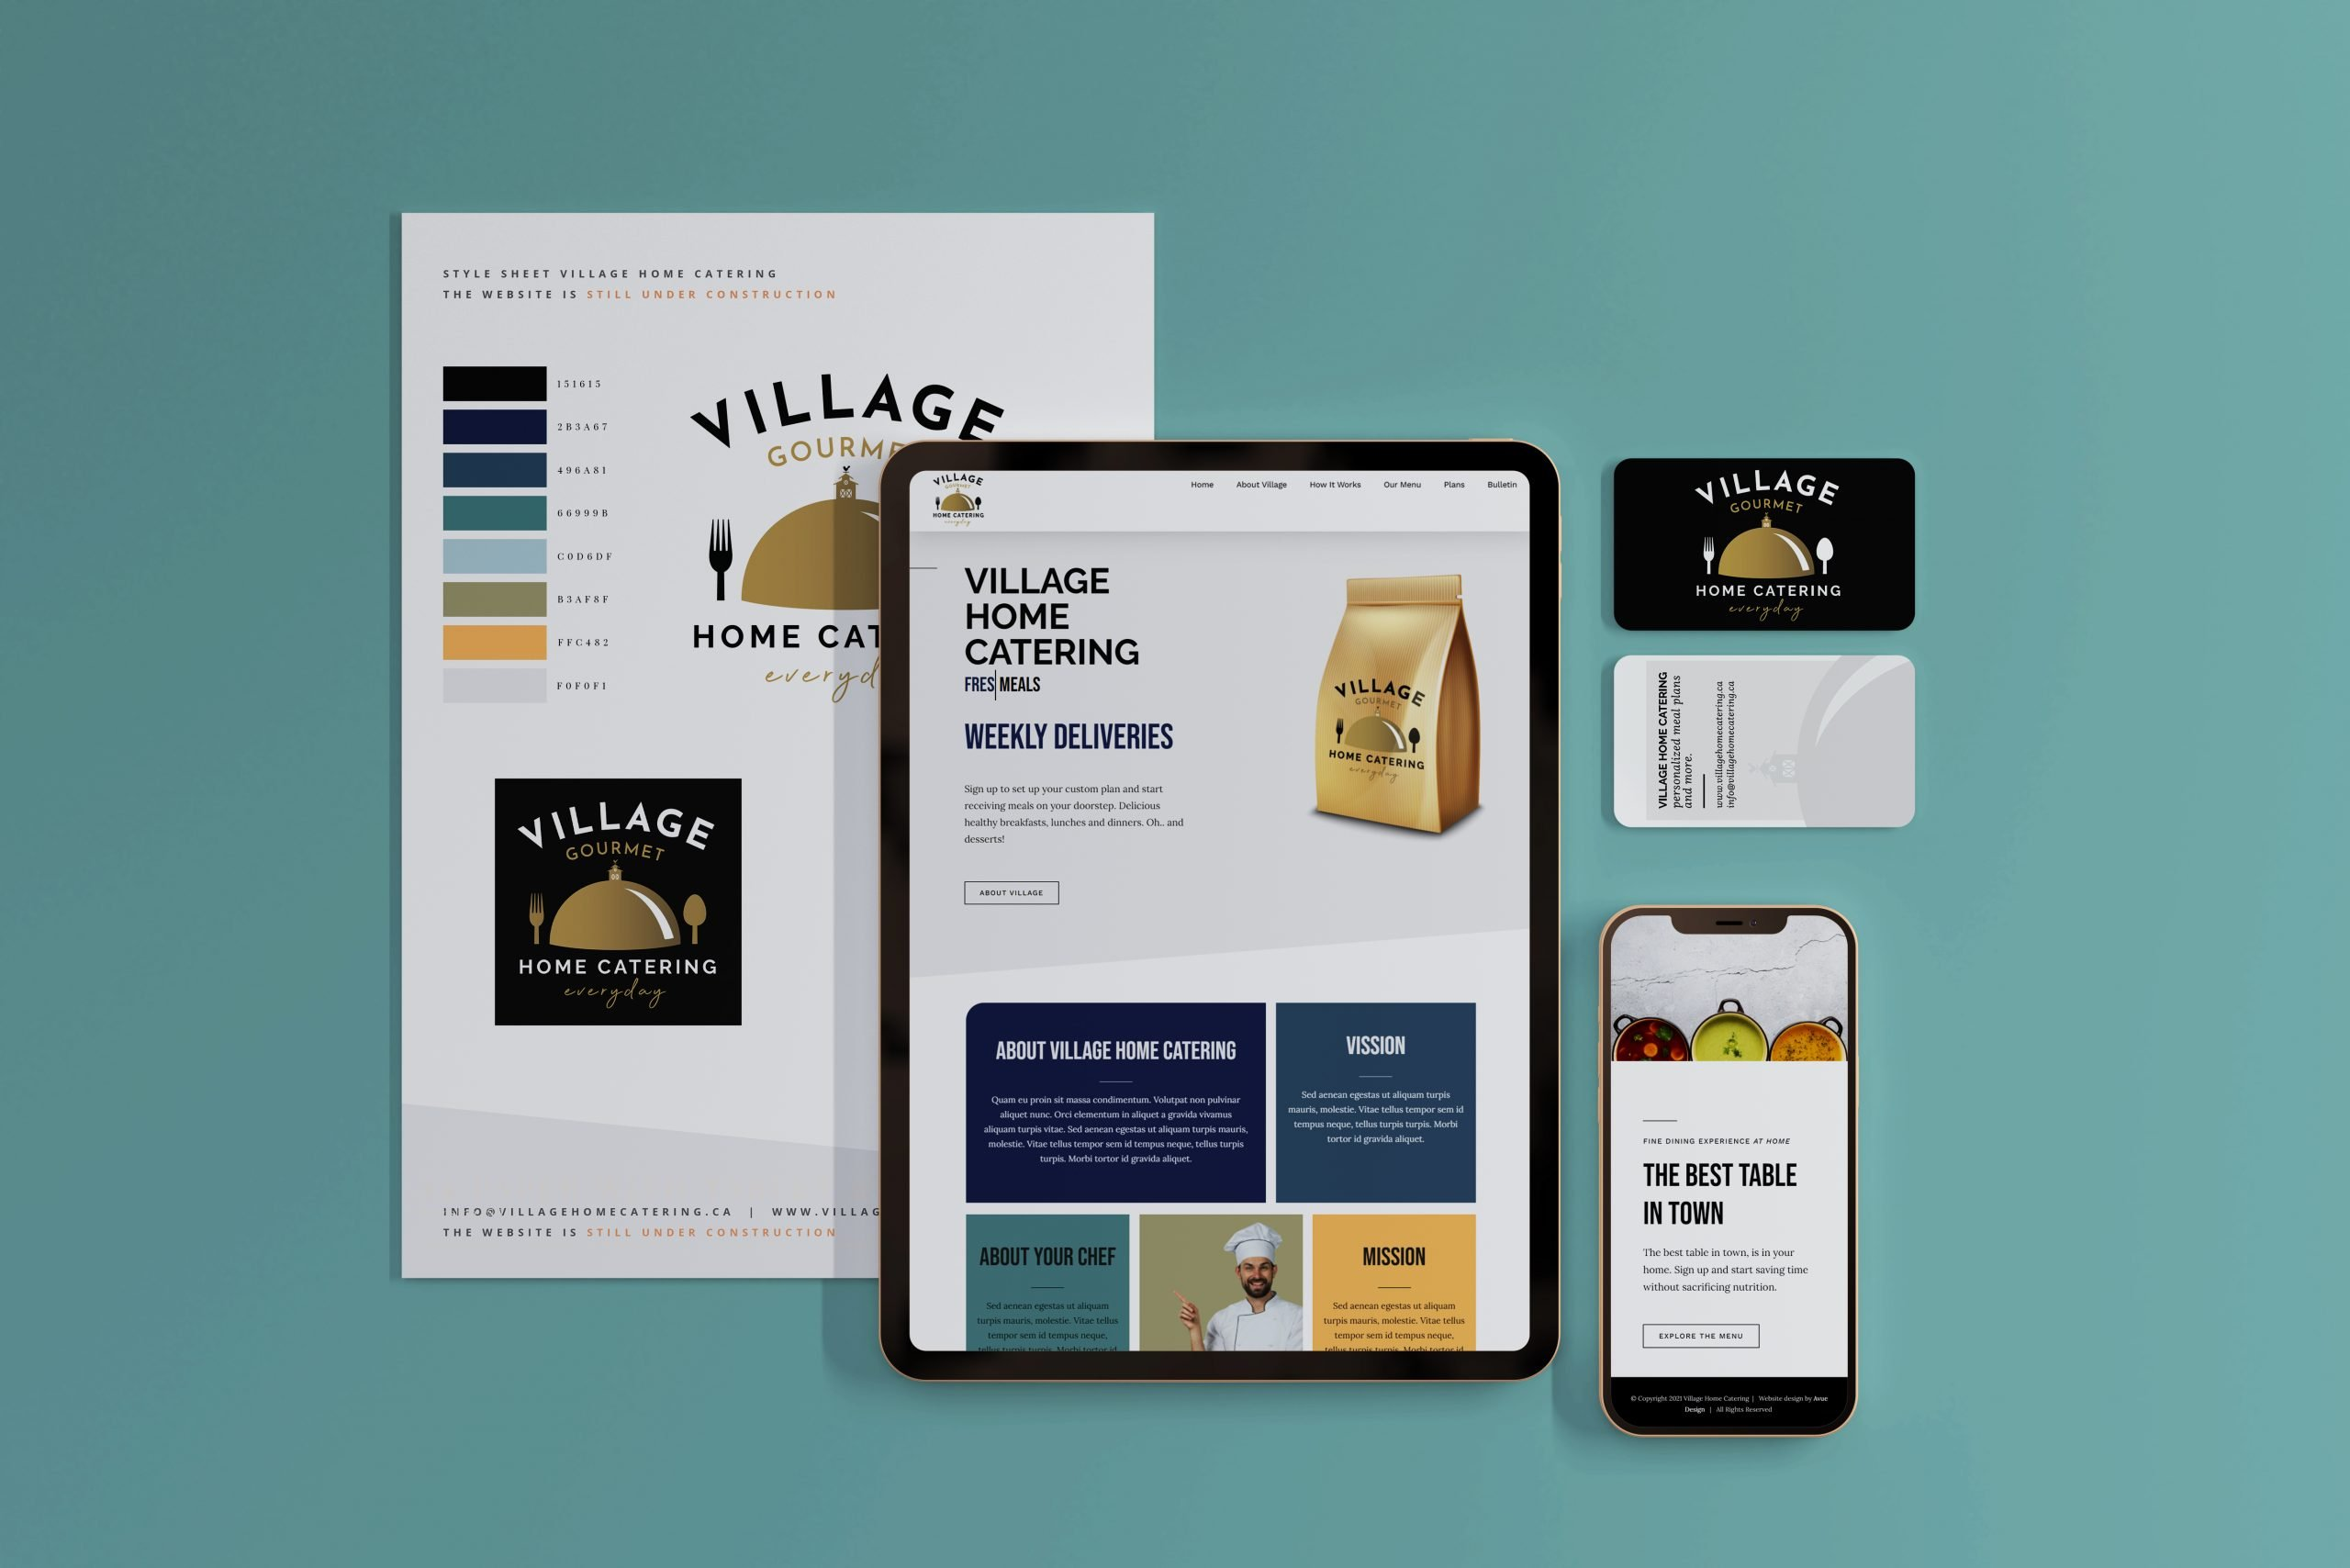 Village Home Catering